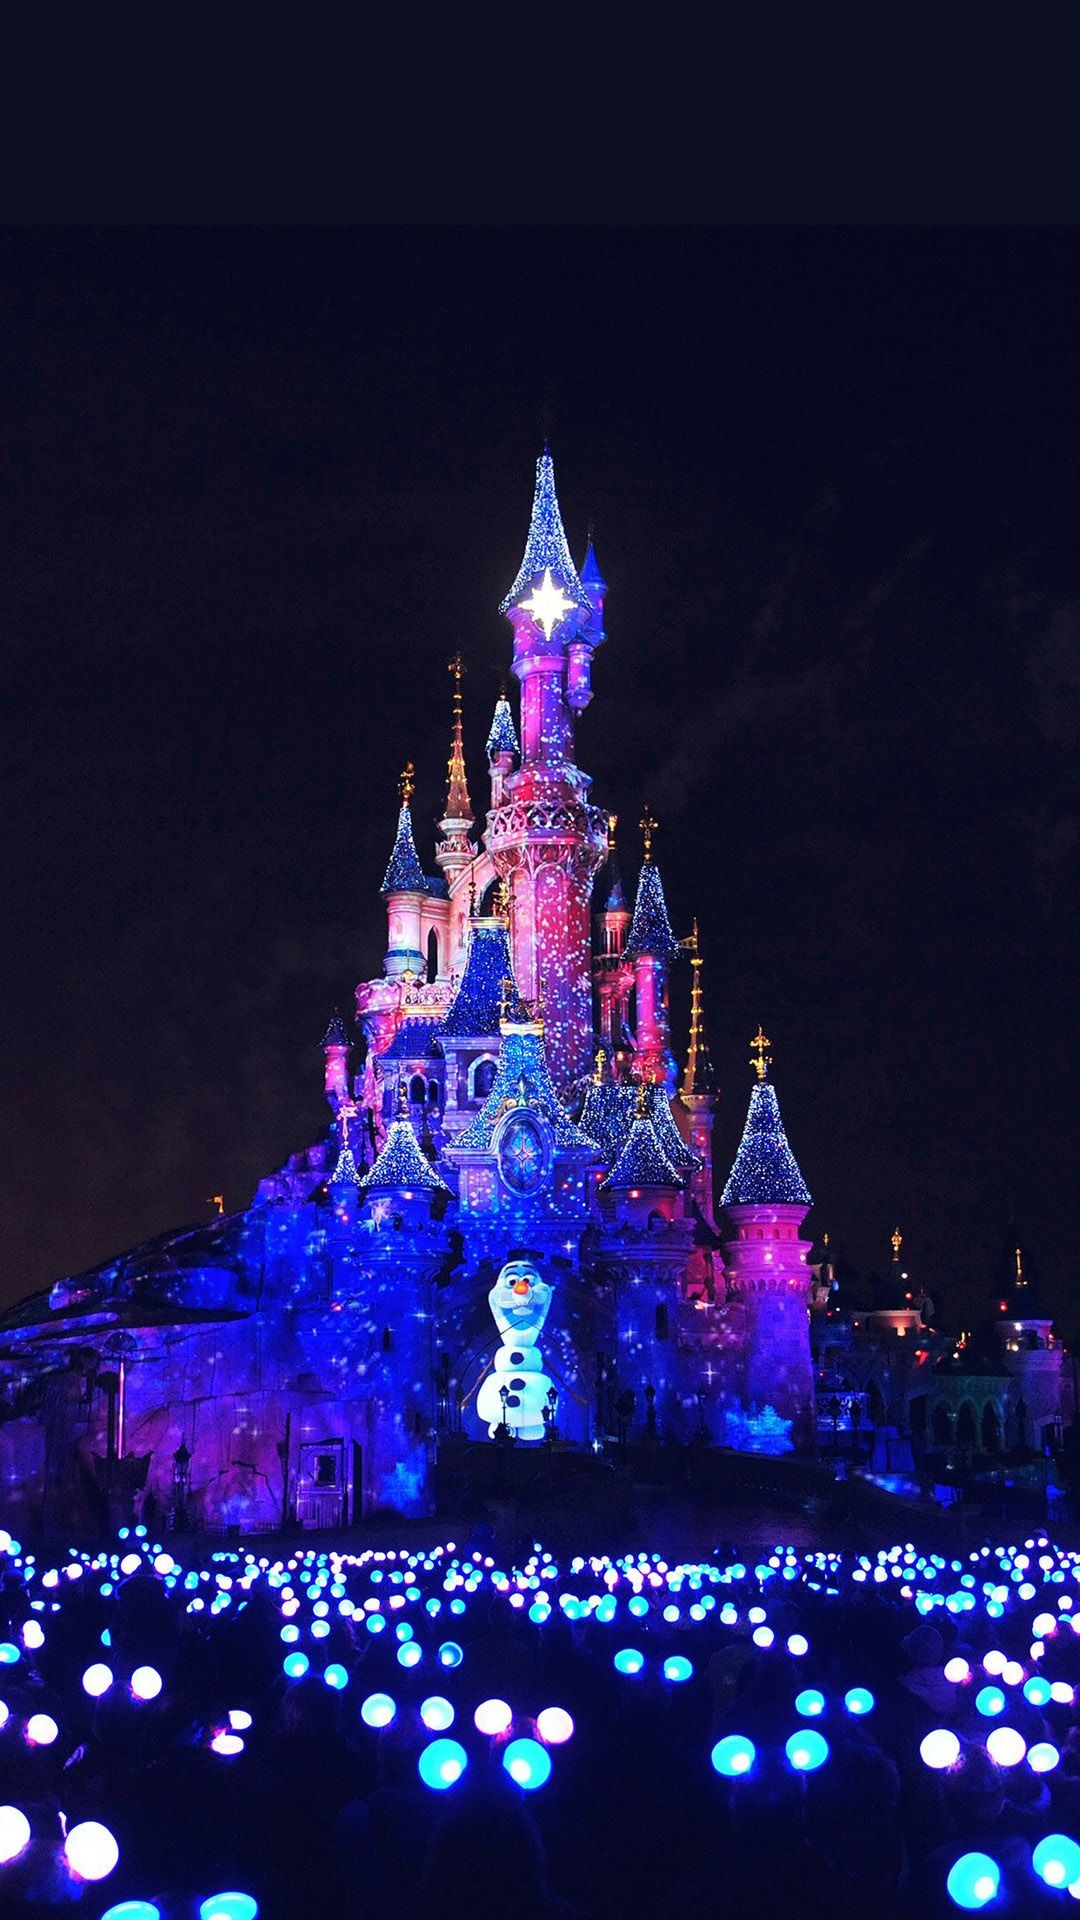 Disney Castle Iphone Wallpaper 74 Images